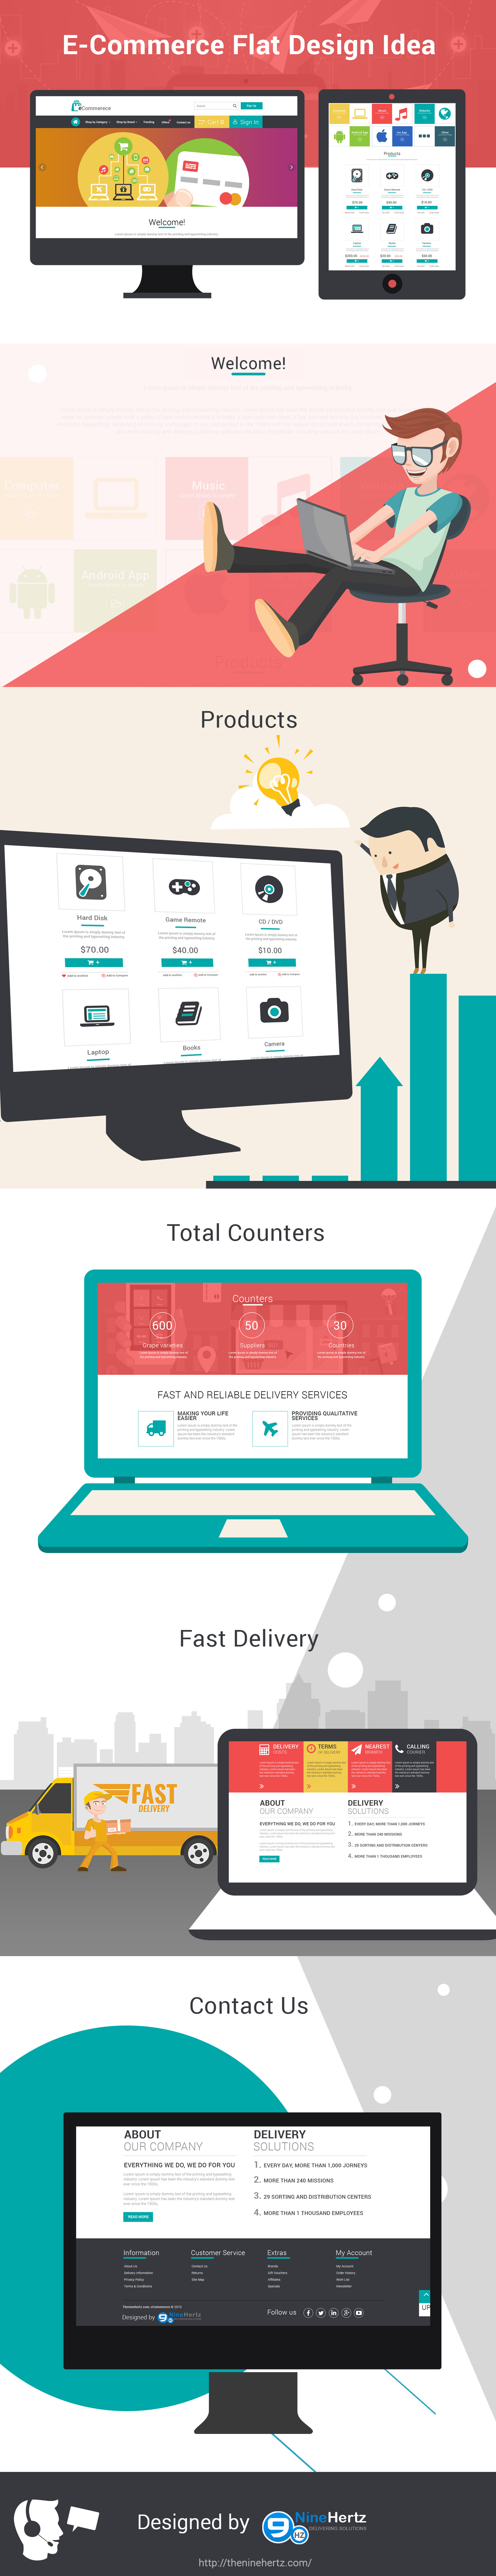 flat design ui idea for ecommerce, Powerpoint templates